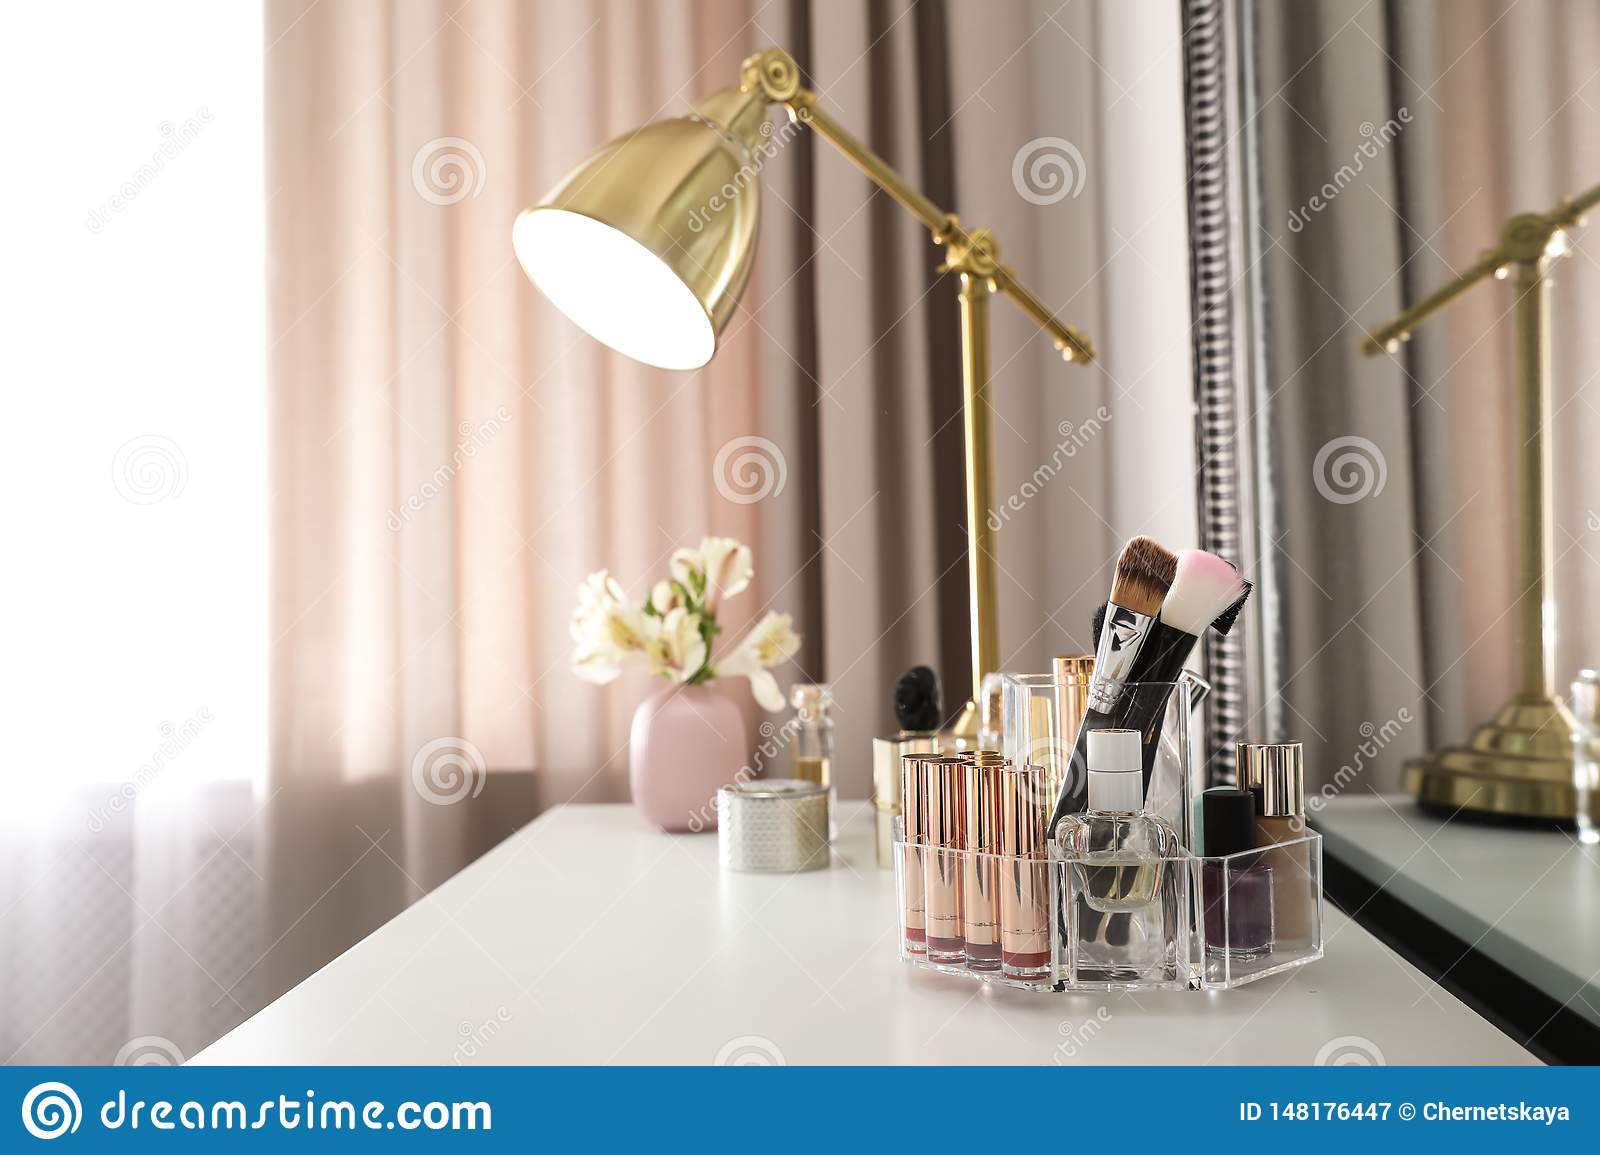 Luxury Makeup Products And Accessories On Dressing Table With Mirror Stock Image Image Of Cosmetology Furniture 148176447